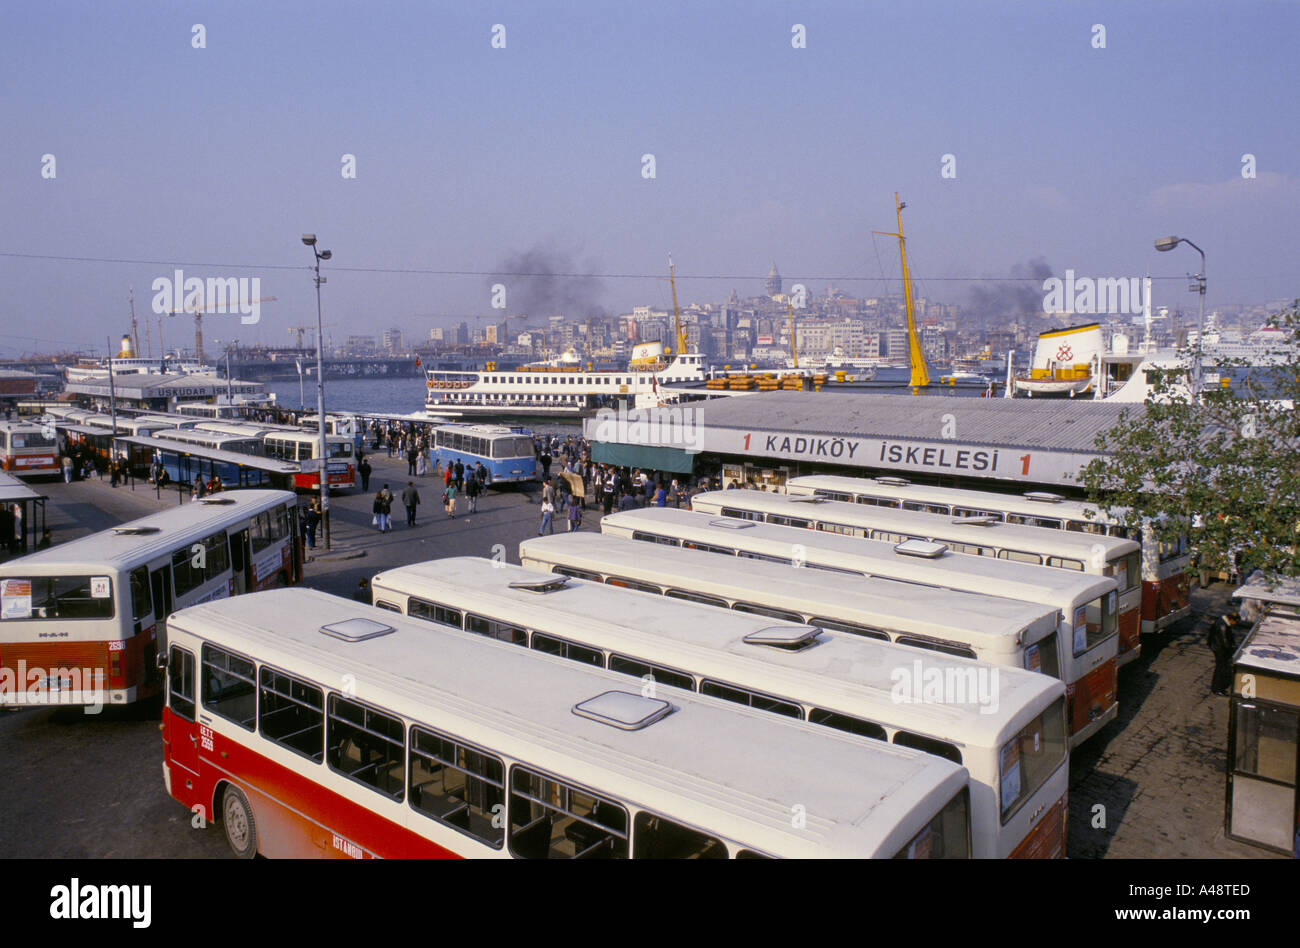 Bus station in istanbul stock photo royalty free image for Ted s fishing station